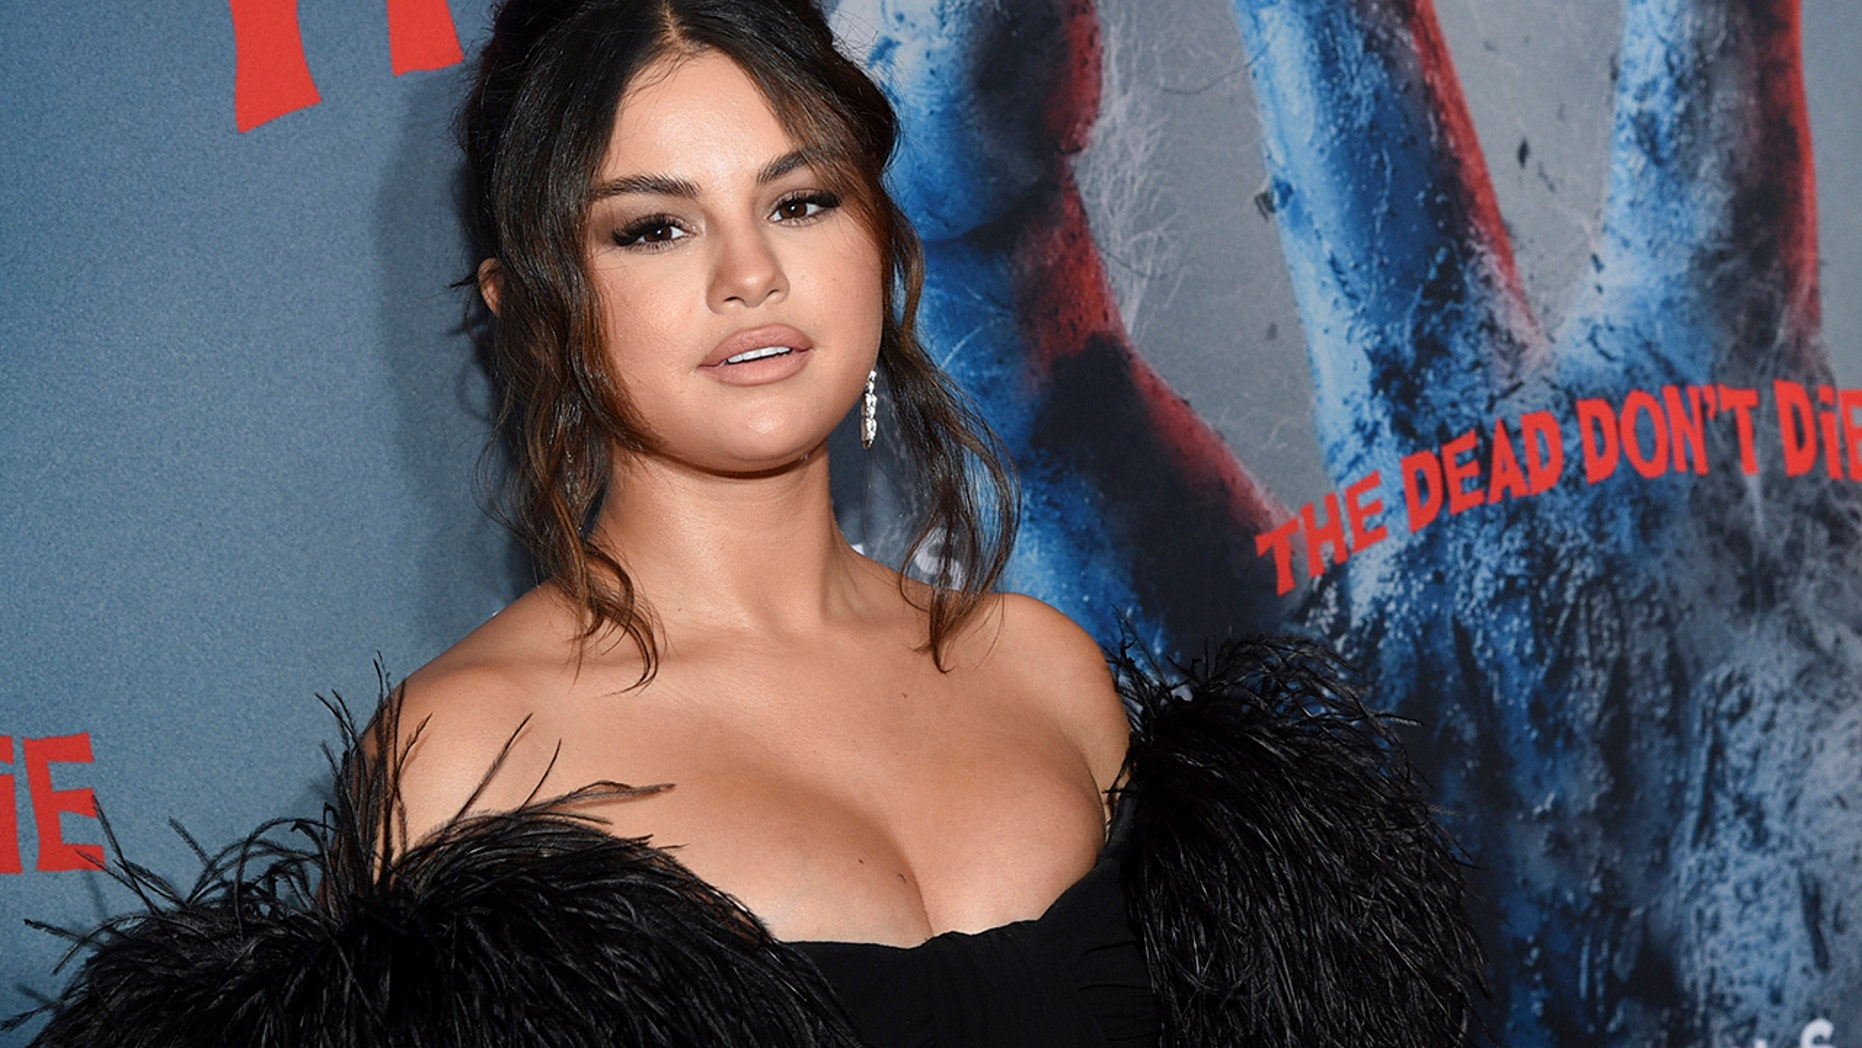 Actress Selena Gomez attends a premiere of The Dead Don't Die, during a Museum of Modern Art on Monday, Jun 10, 2019, in New York. (Photo by Evan Agostini/Invision/AP)